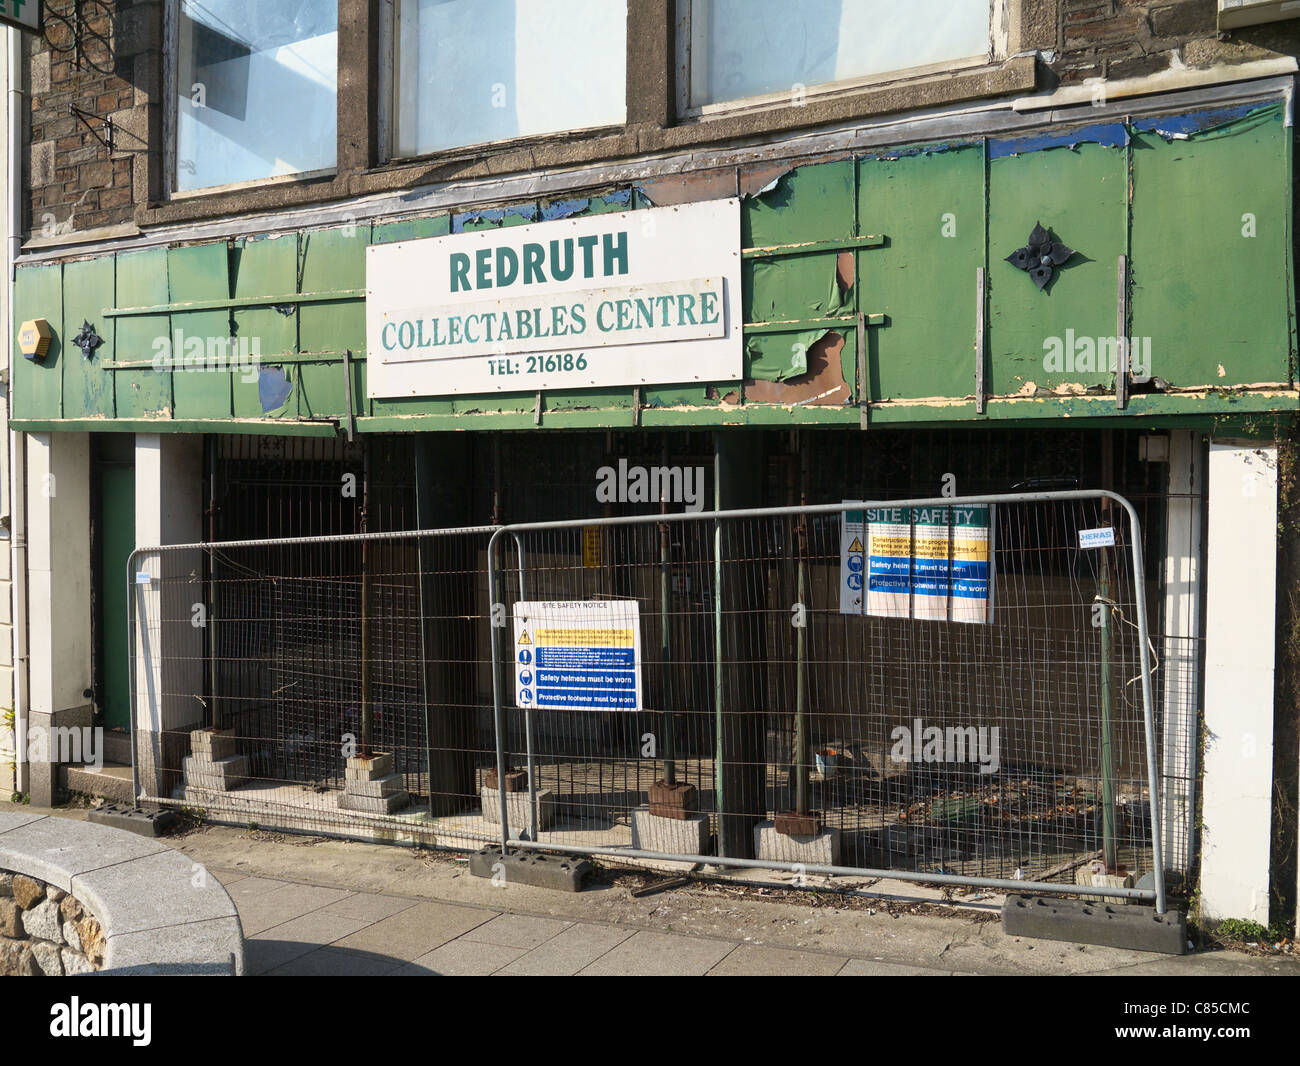 Redruth Collectables Centre closed shop with construction site barriers outside. - Stock Image